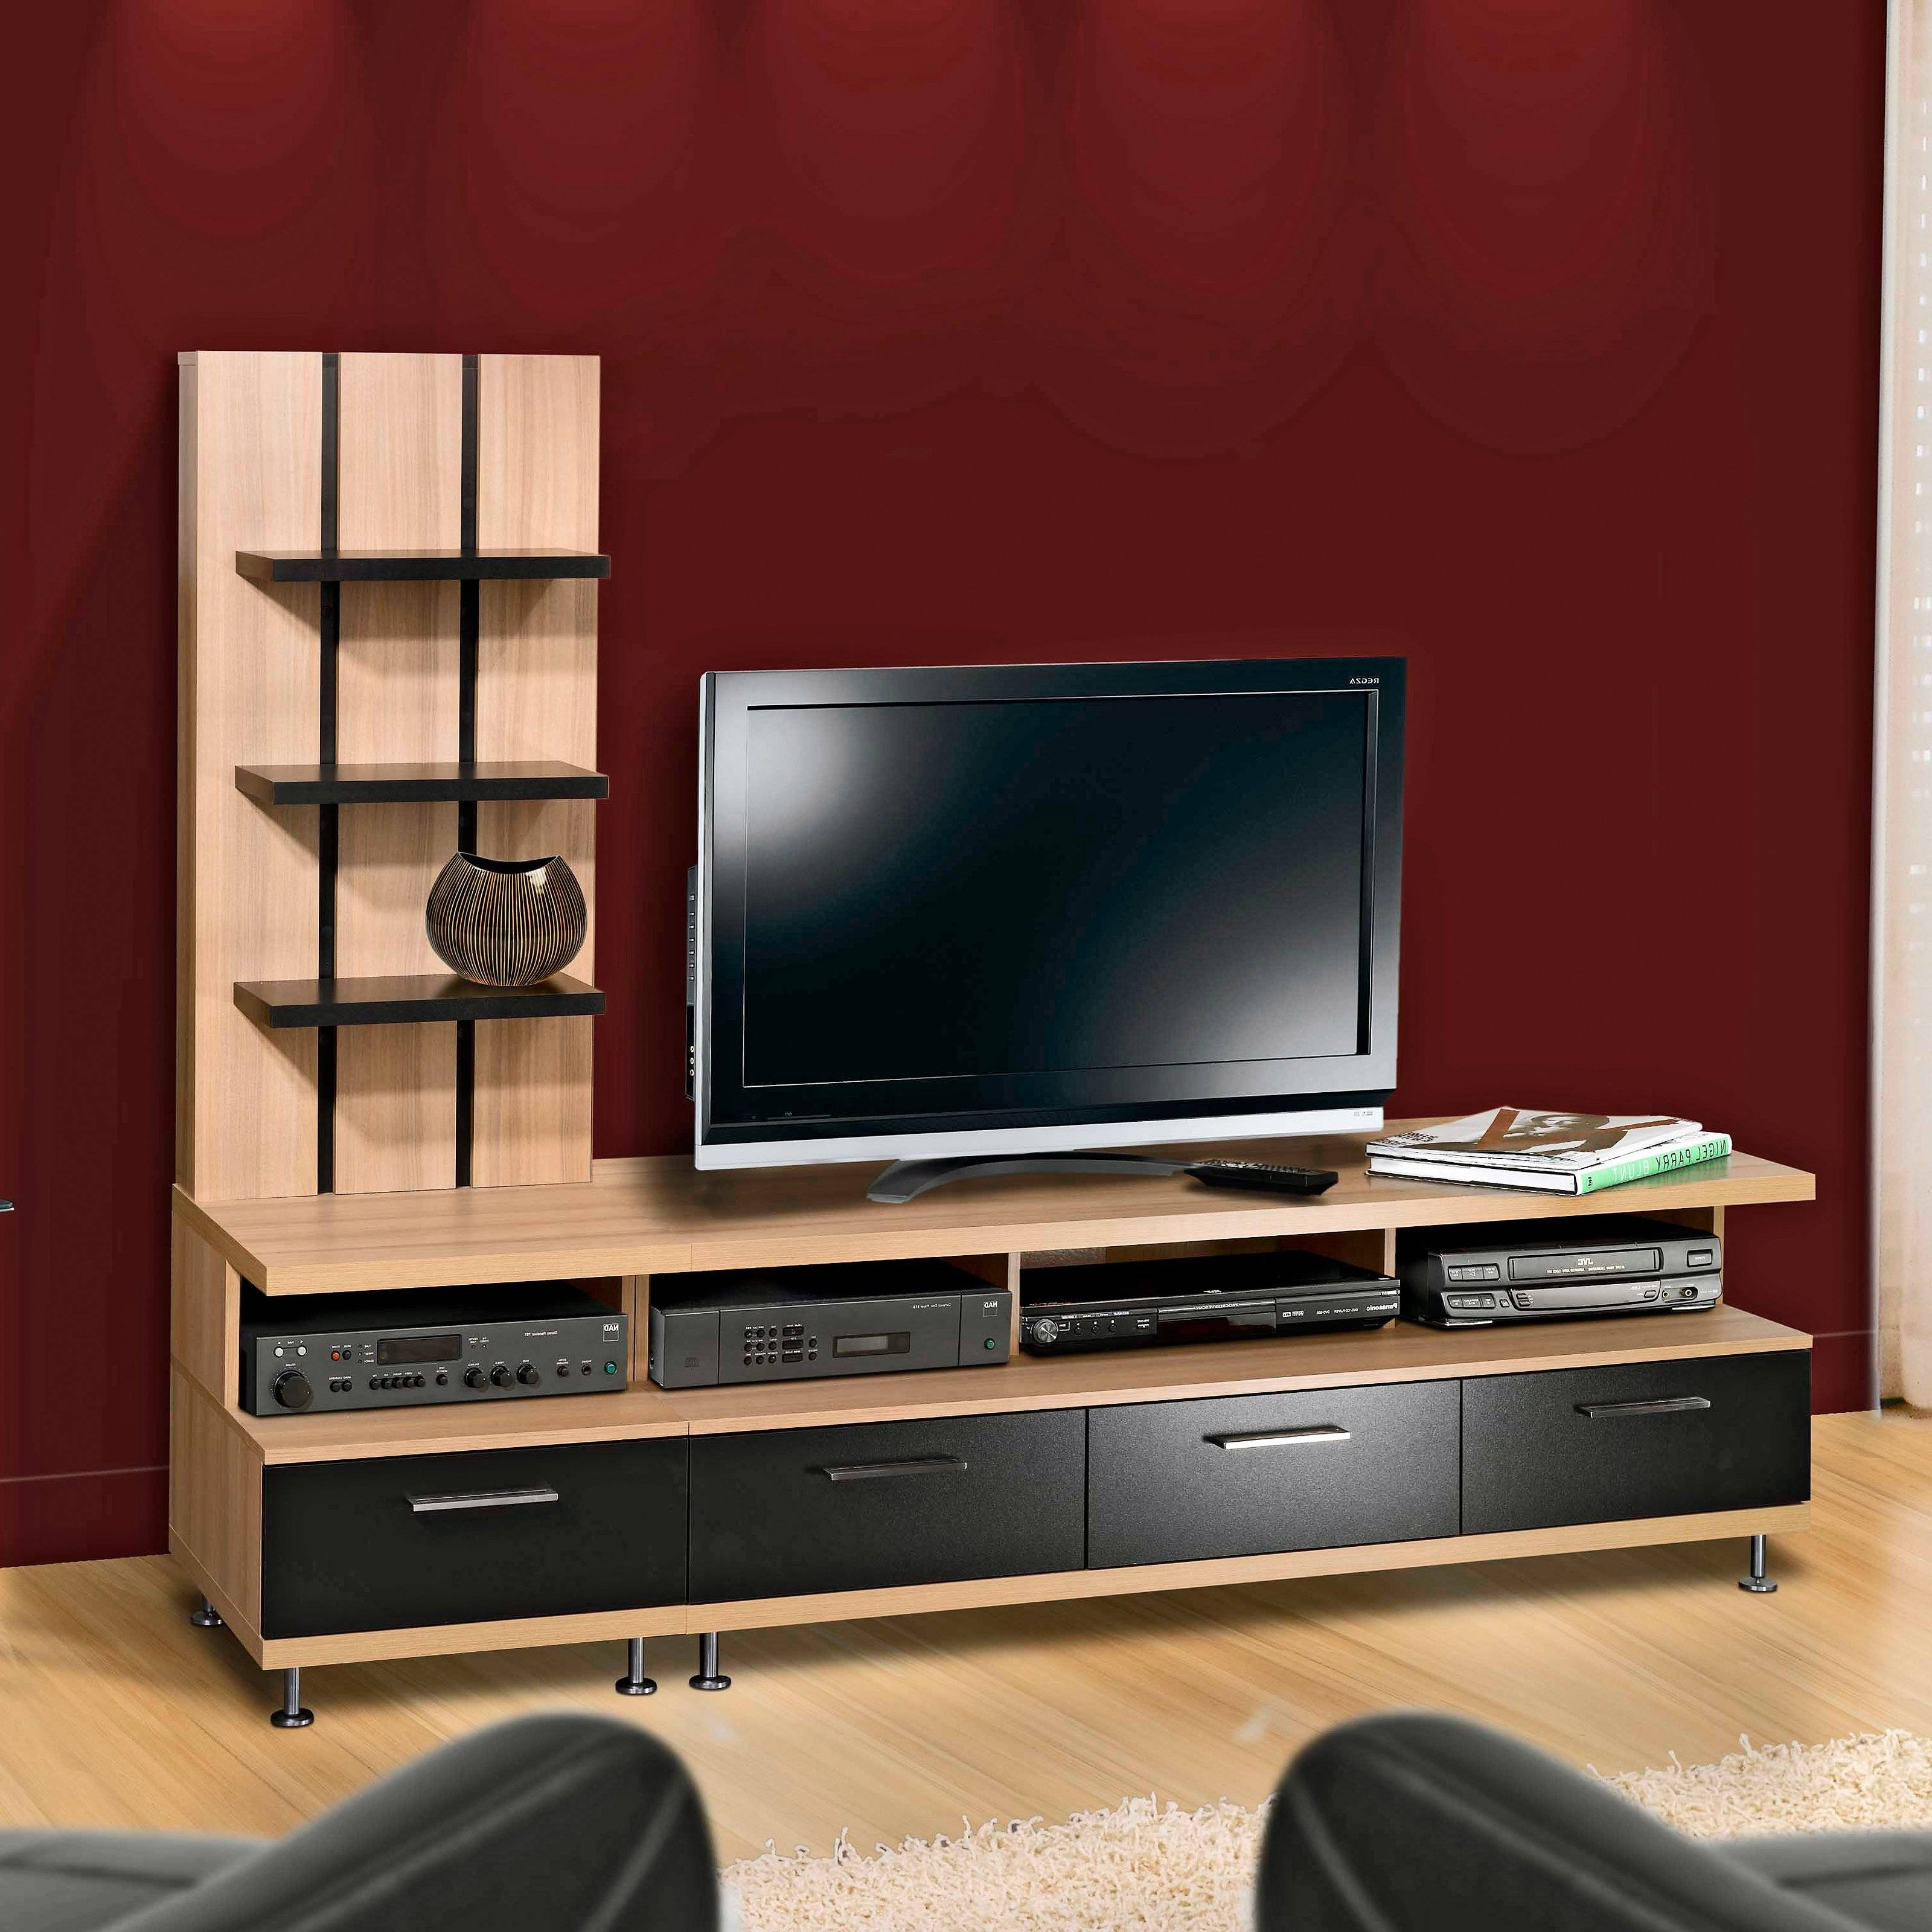 Short Wooden And Metal Tv Stand Entertainment Center With Drawers Throughout Tv Stands With Drawers And Shelves (View 11 of 15)